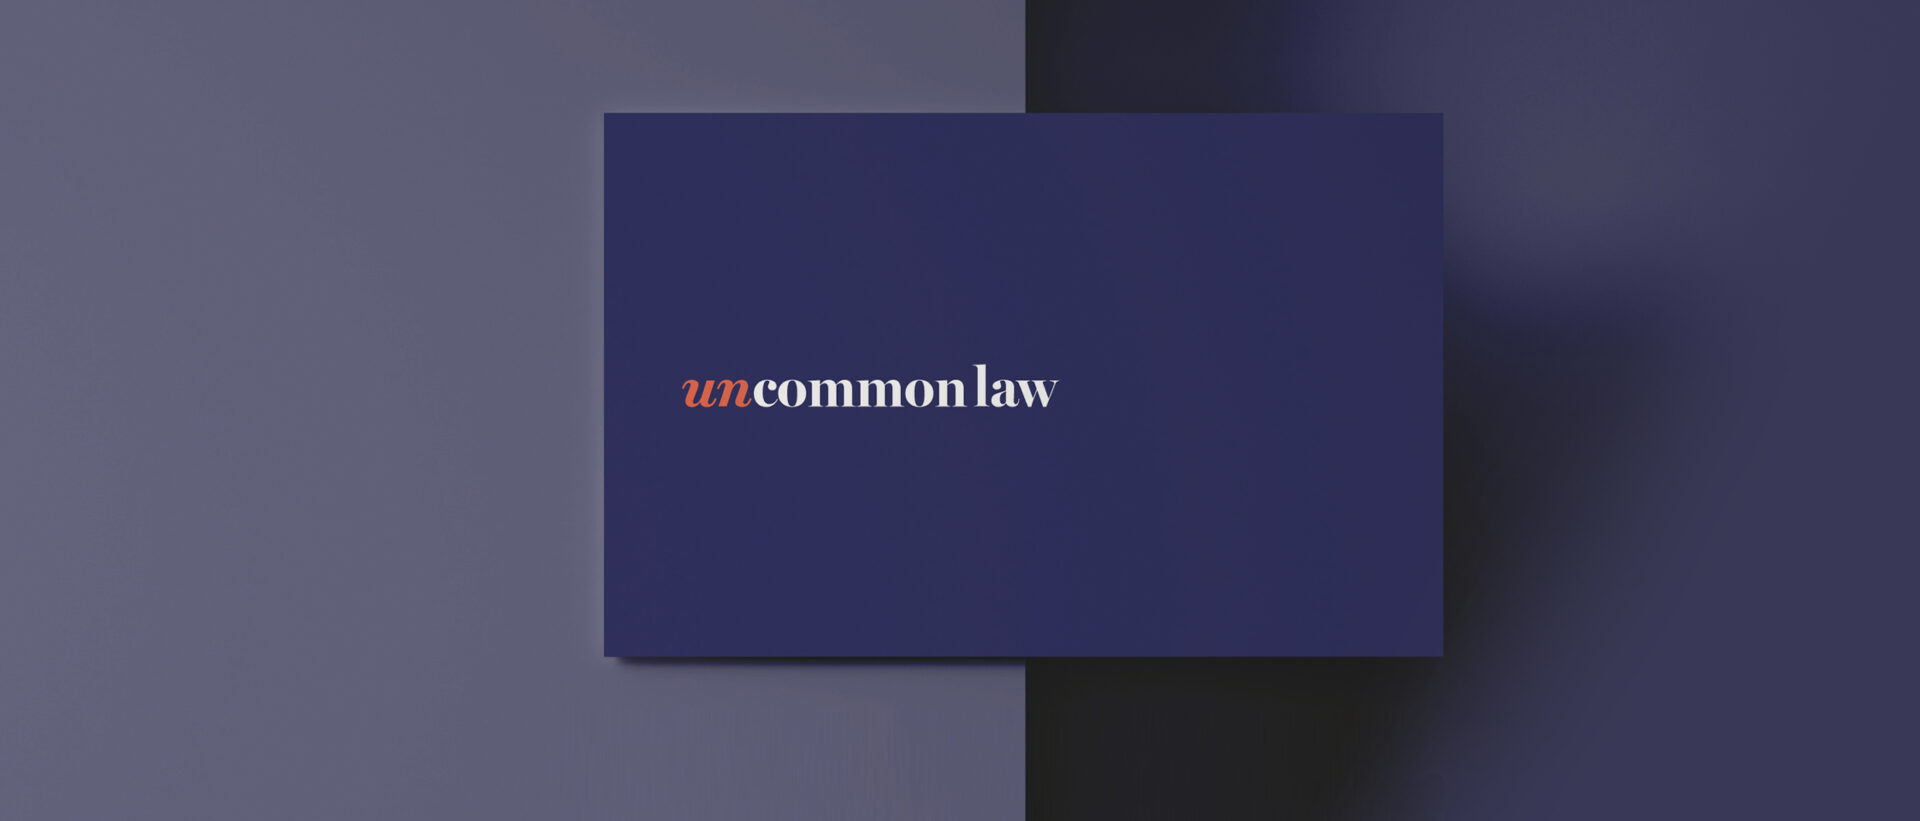 Uncommon Law – Business Card